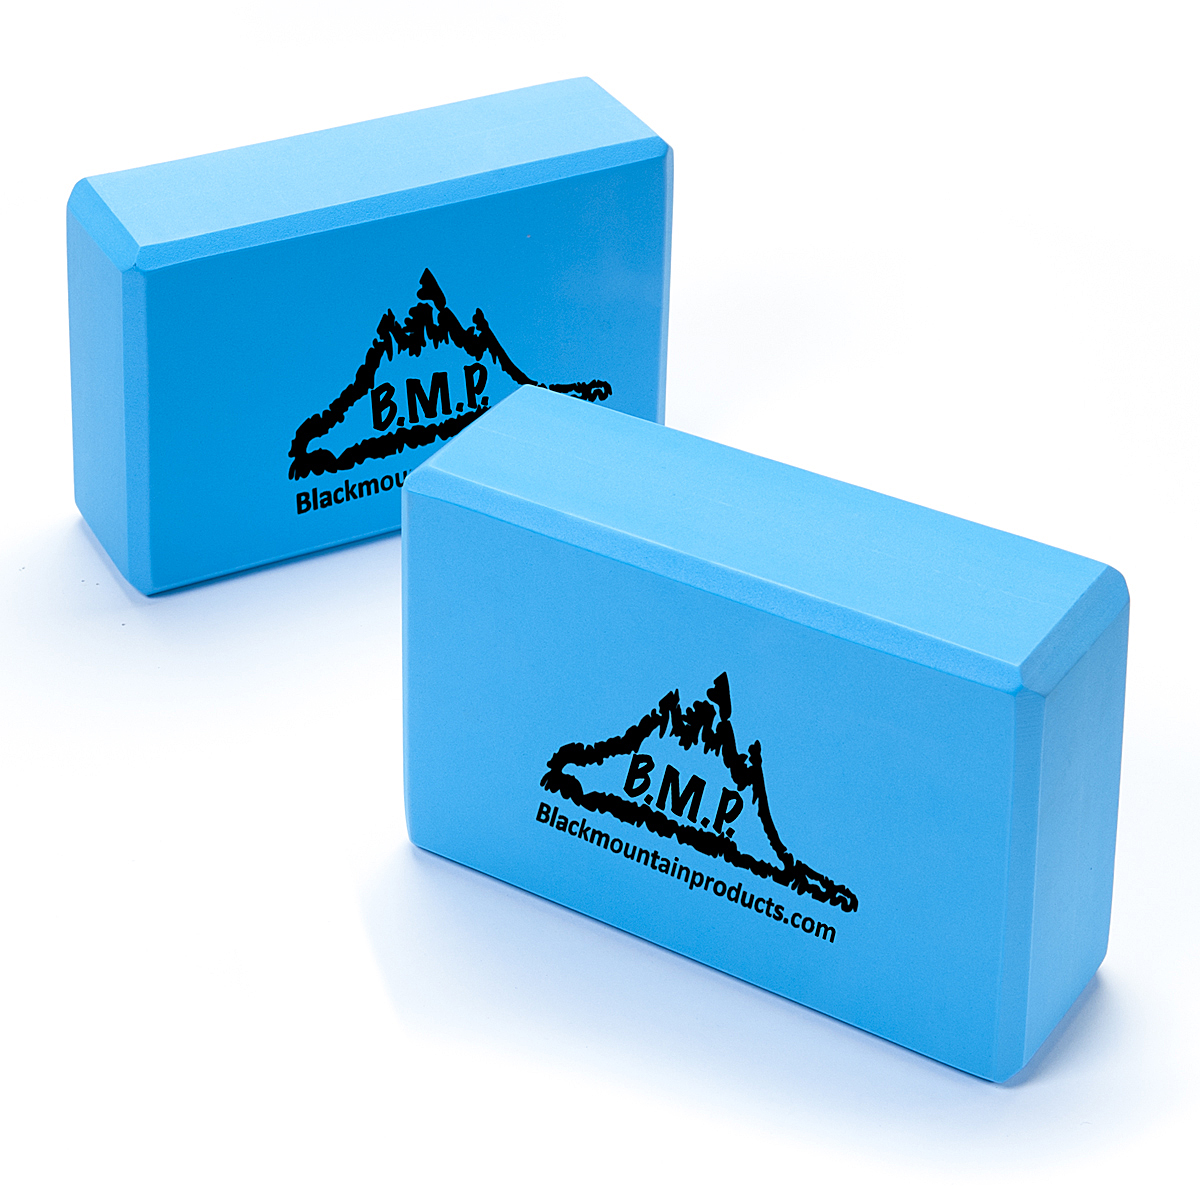 "Black Mountain Products Set of Two Yoga Blocks 3"" x 6""x 9"" Blue"